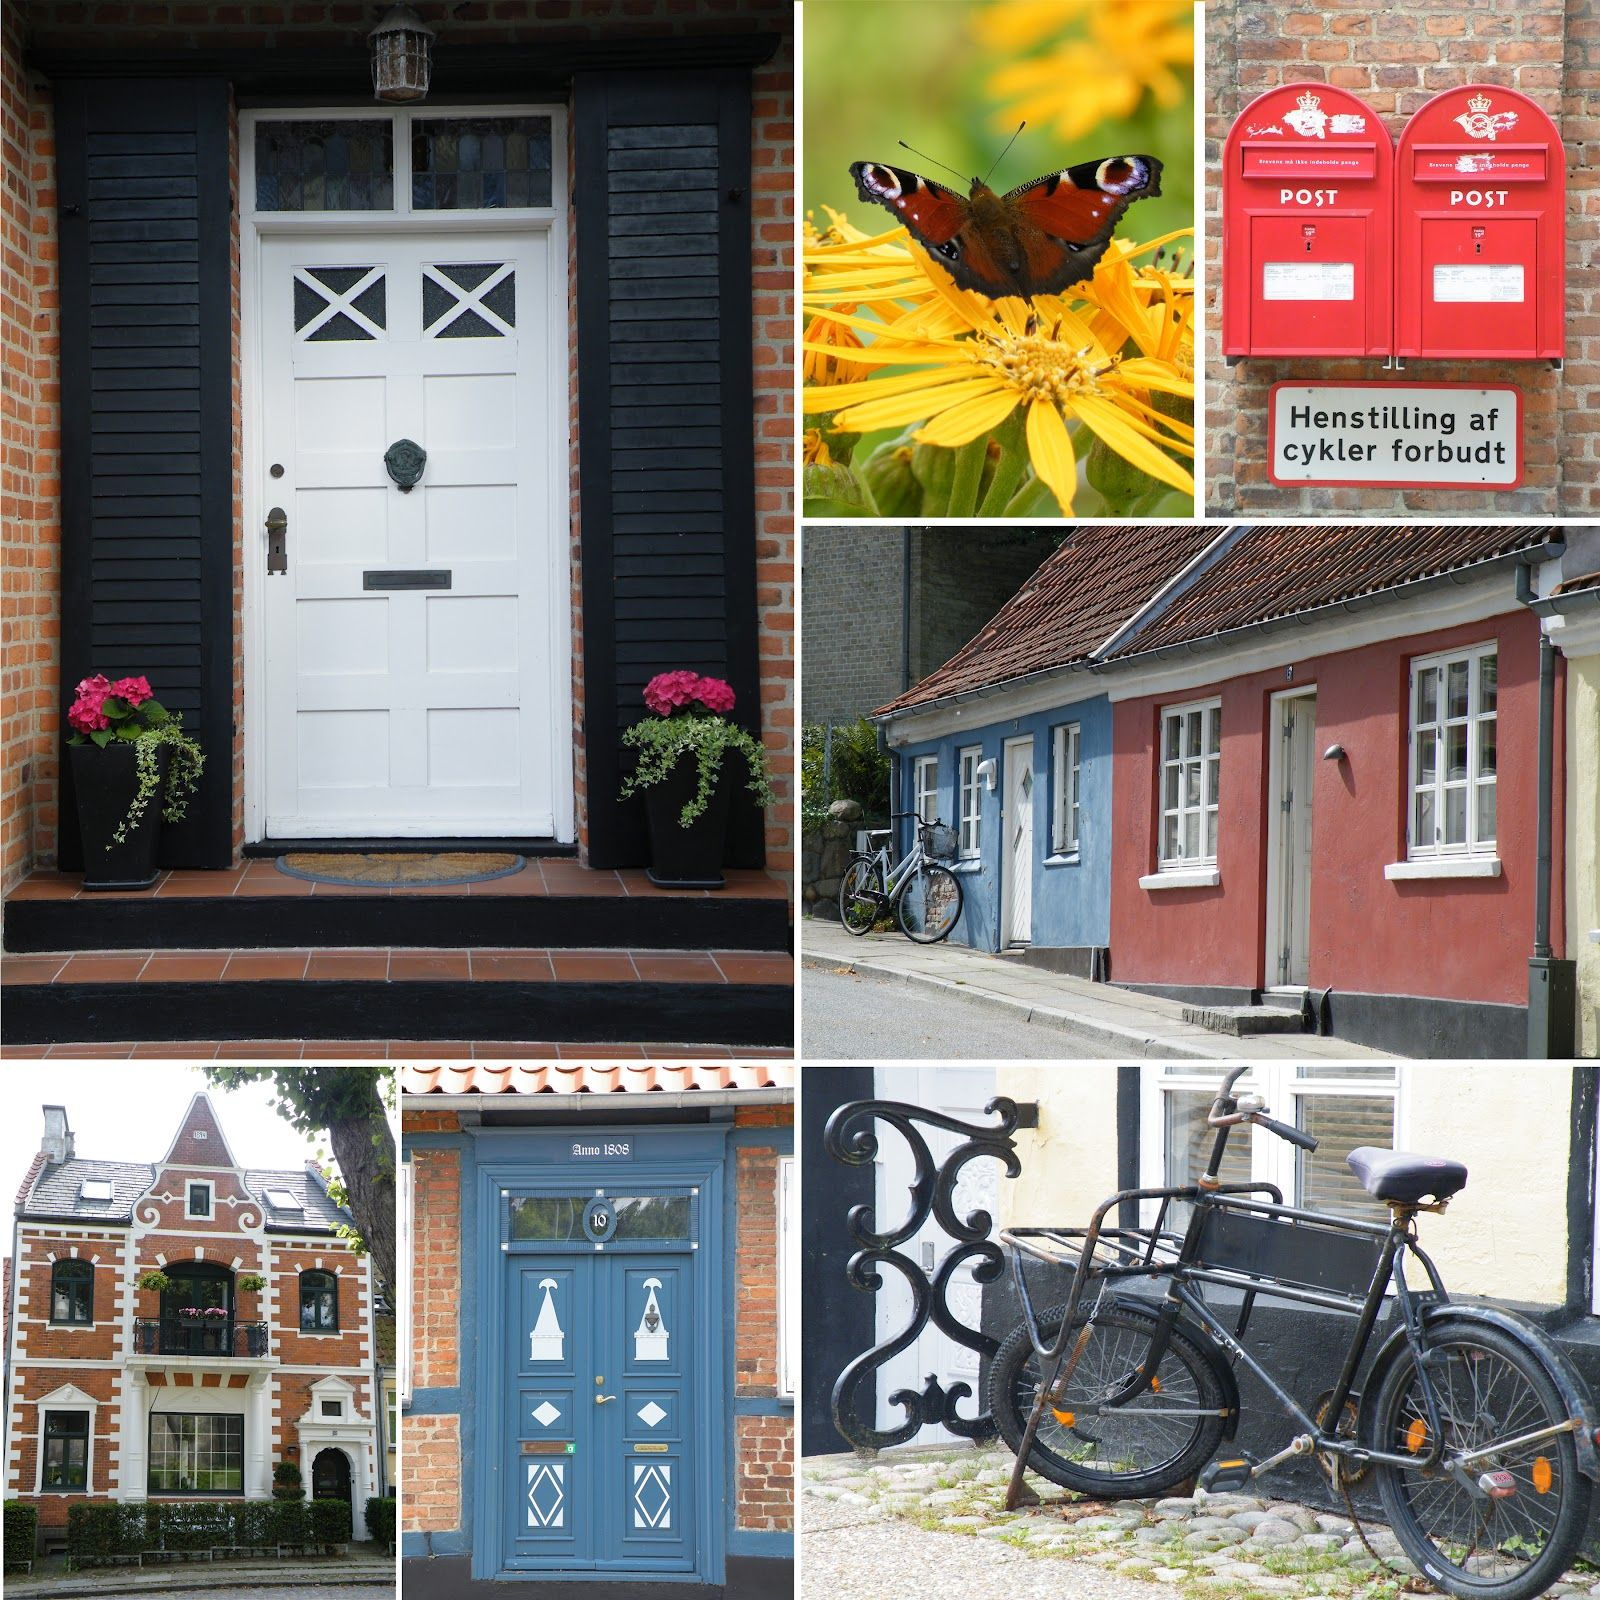 [ Postcard from Viborg ]